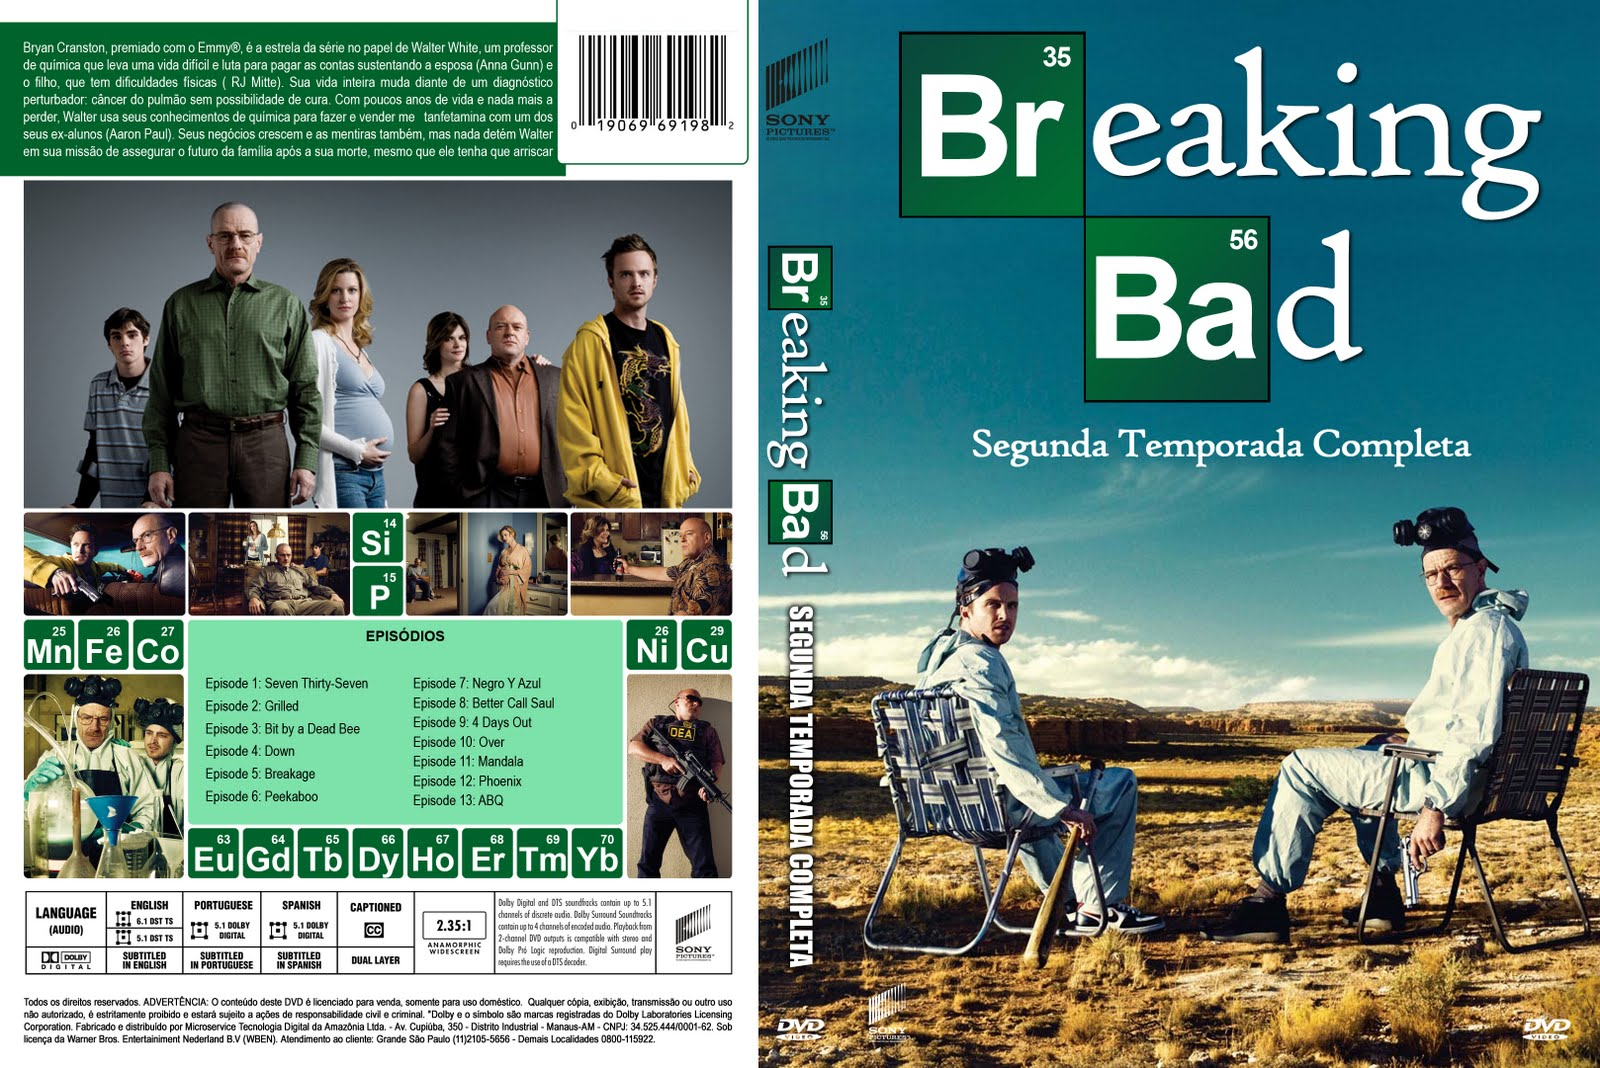 an overview of season five of the hit tv series breaking bad